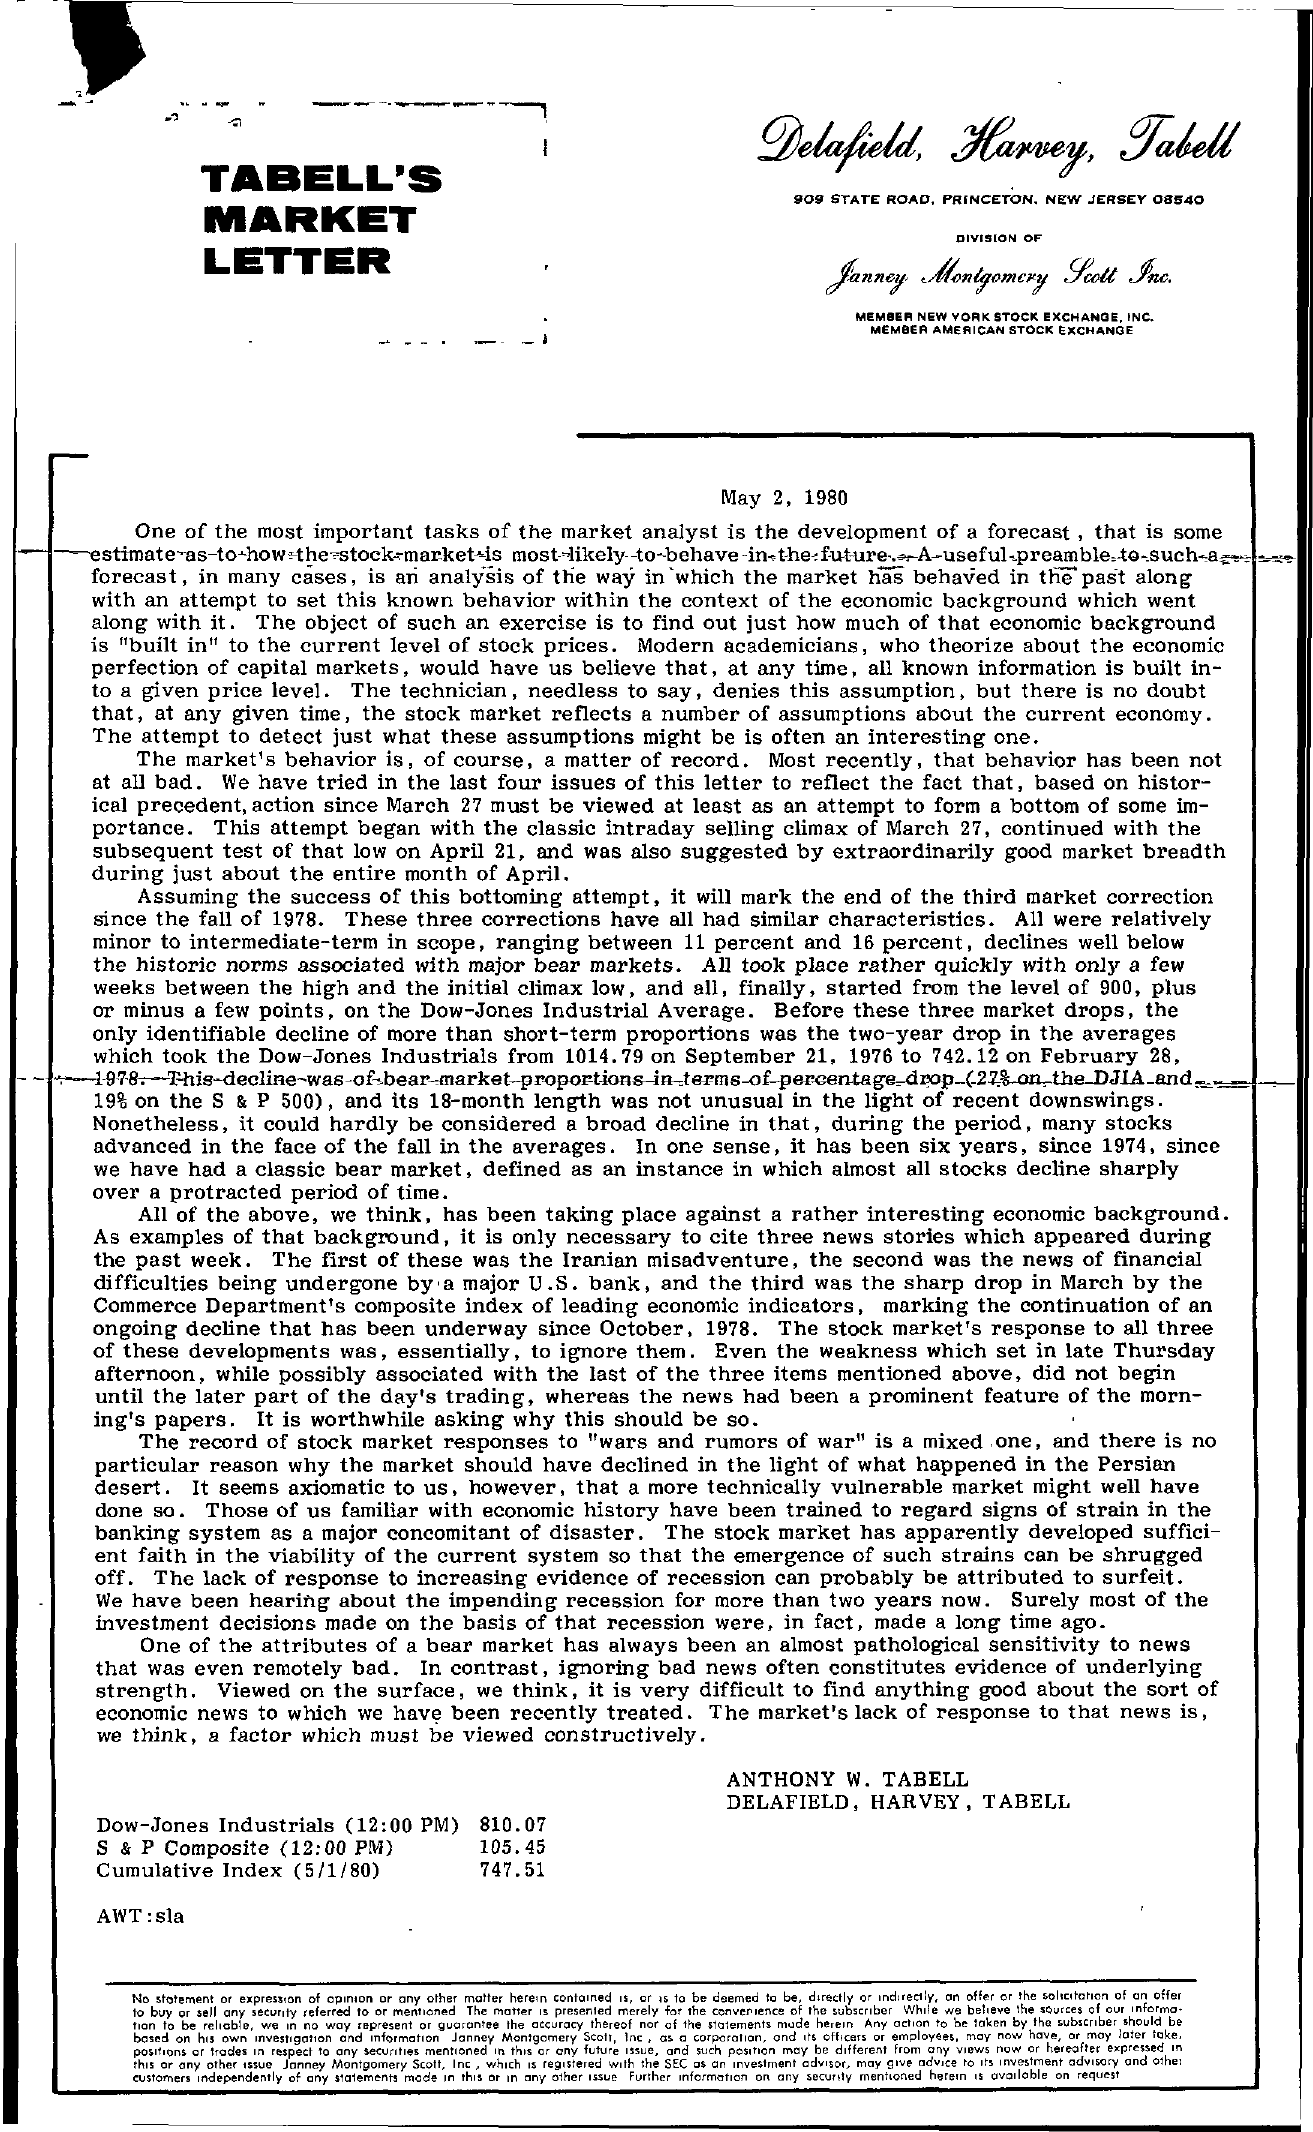 Tabell's Market Letter - May 02, 1980